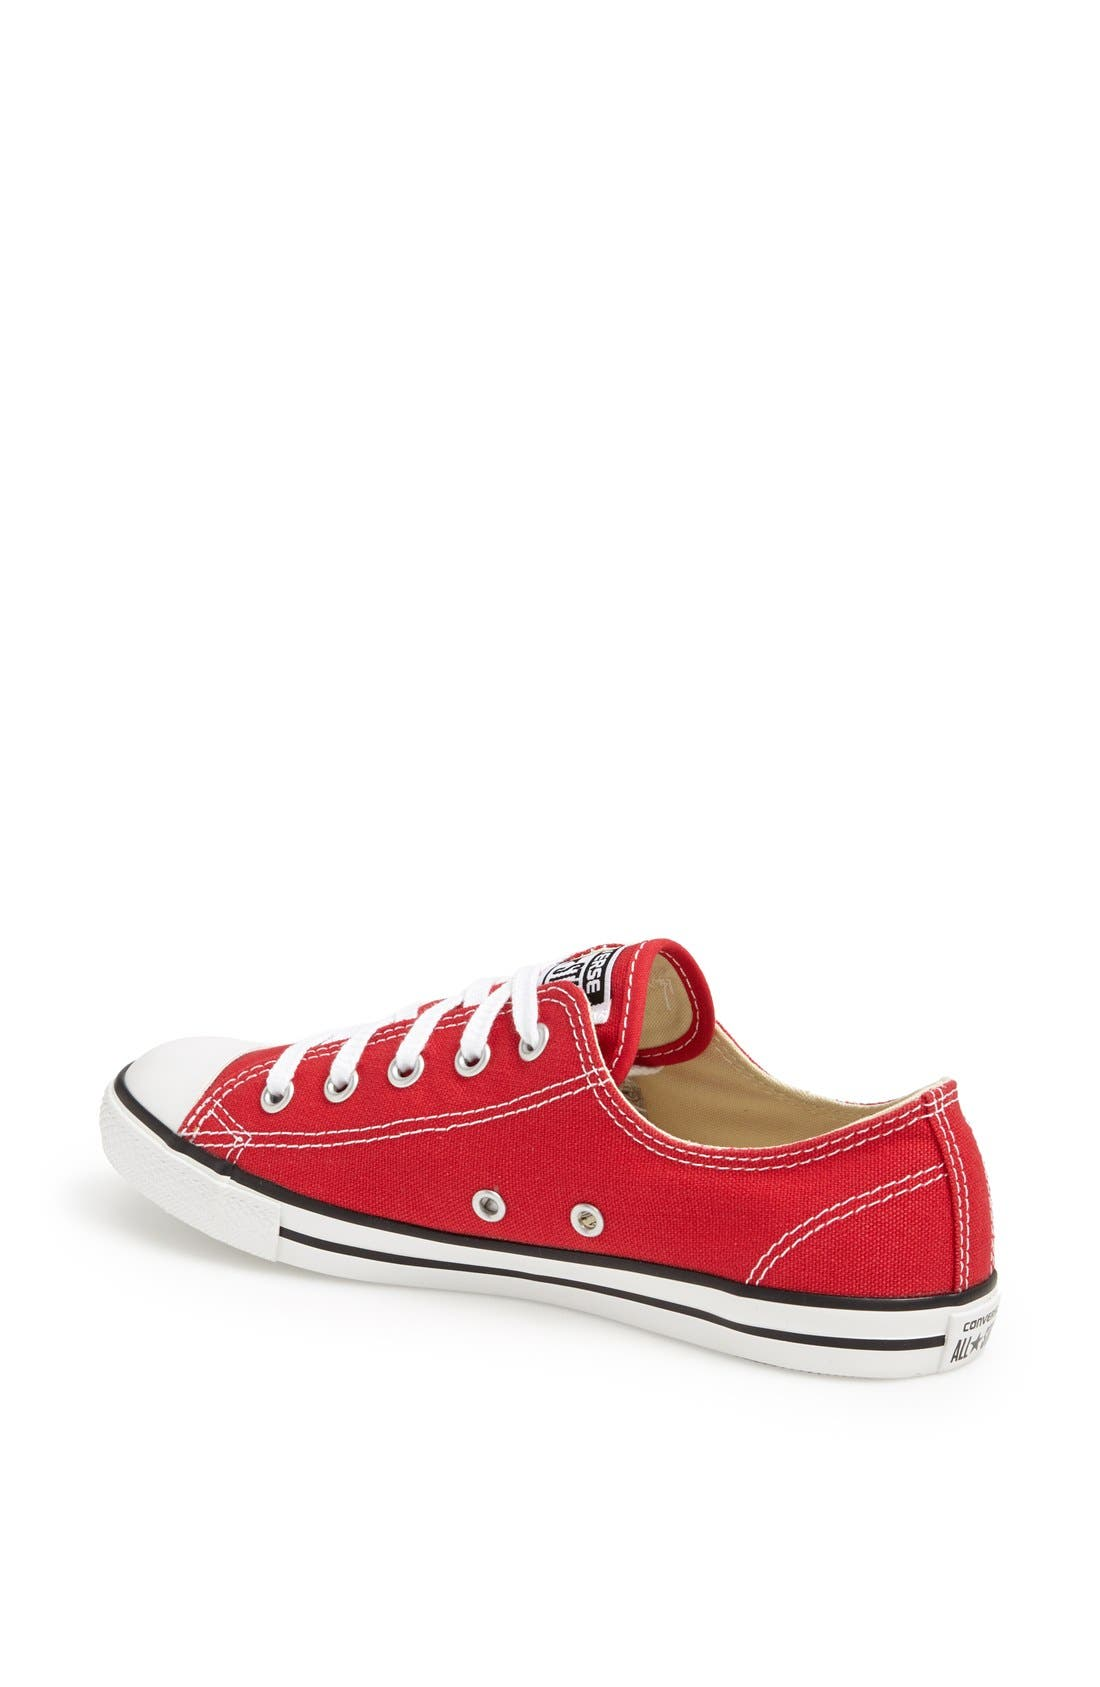 ,                             Chuck Taylor<sup>®</sup> 'Dainty' Sneaker,                             Alternate thumbnail 32, color,                             600